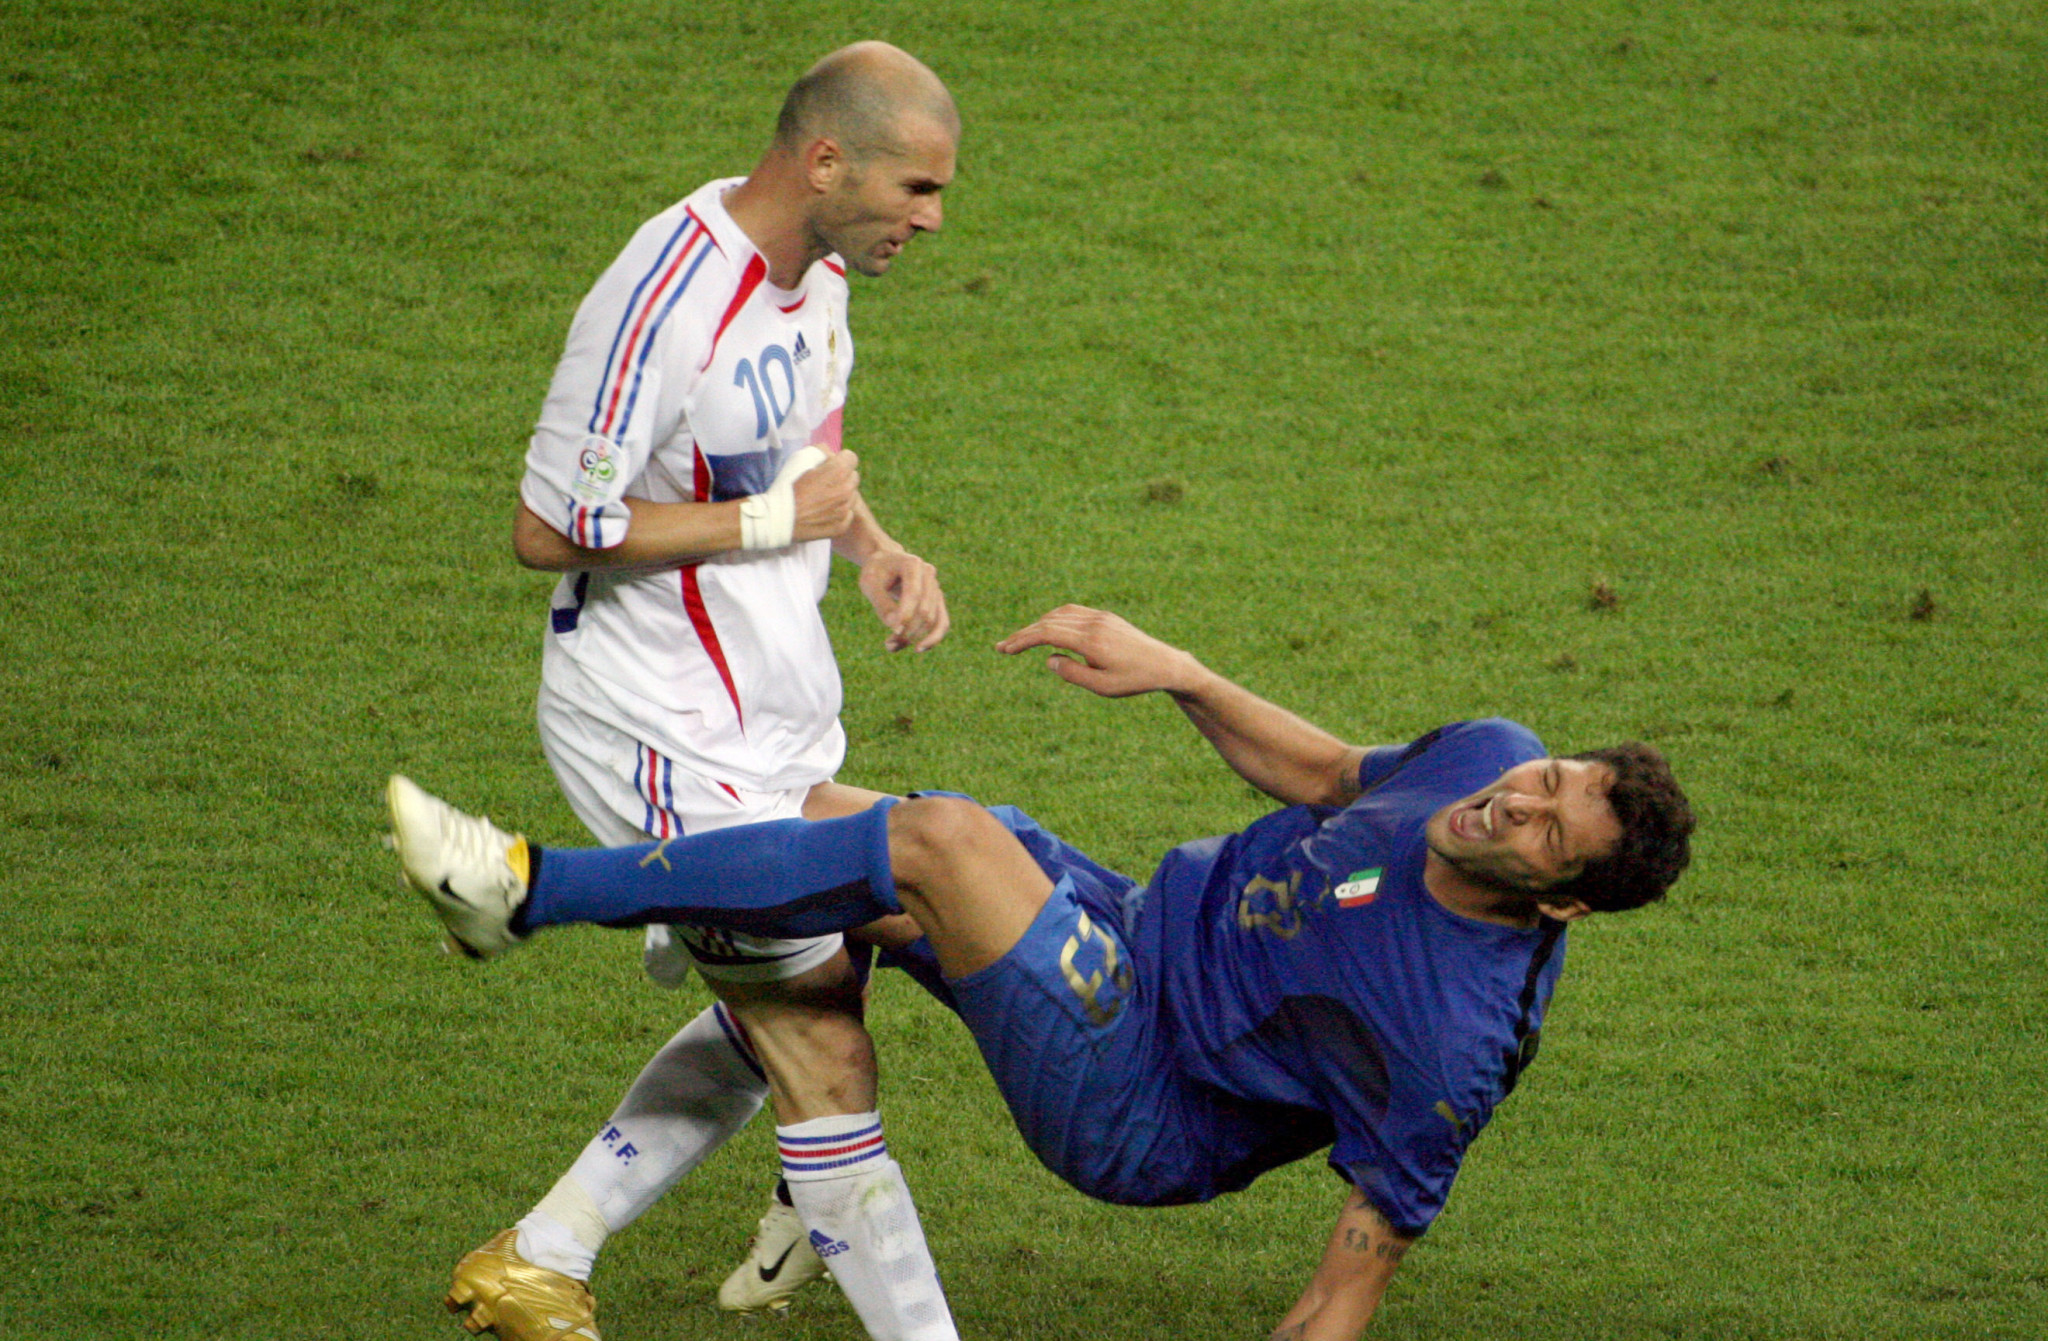 Zinedine Zidane's infamous headbutt at the Olympic Stadium in the 2006 World Cup Final ©Getty Images